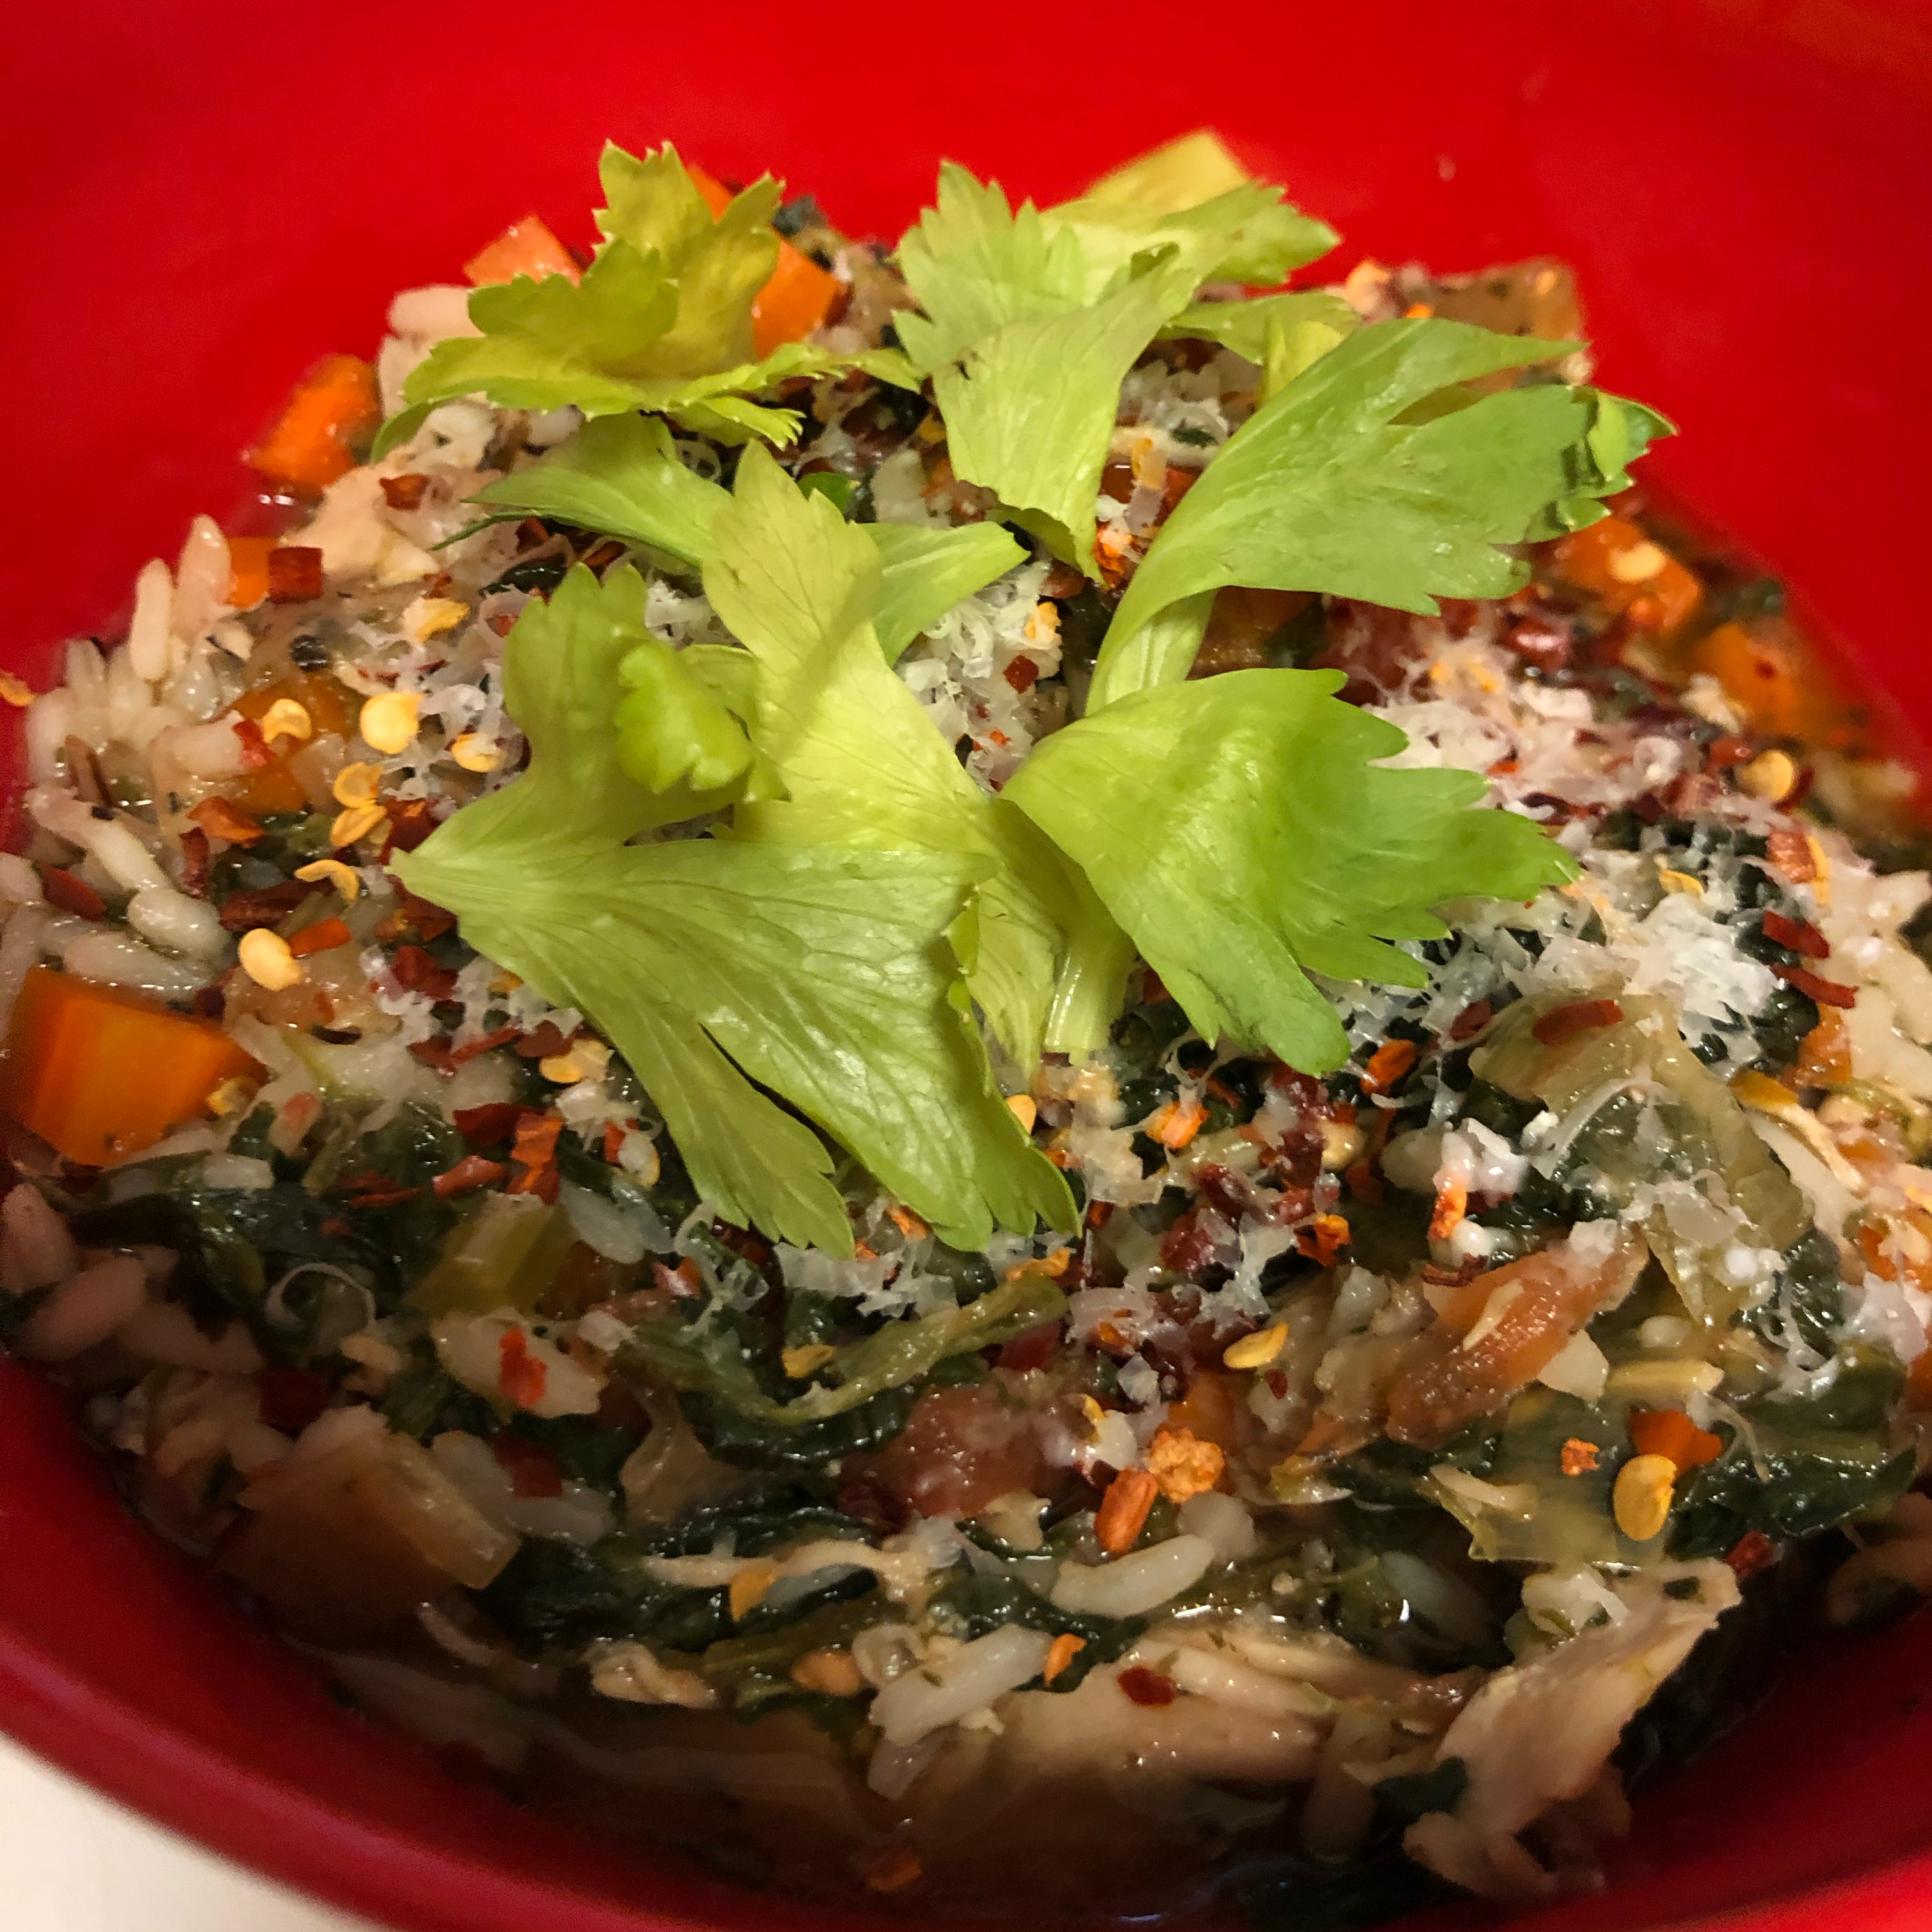 Becky's Gluten-Free Slow Cooker Chicken Vegetable Soup Lilchamp24